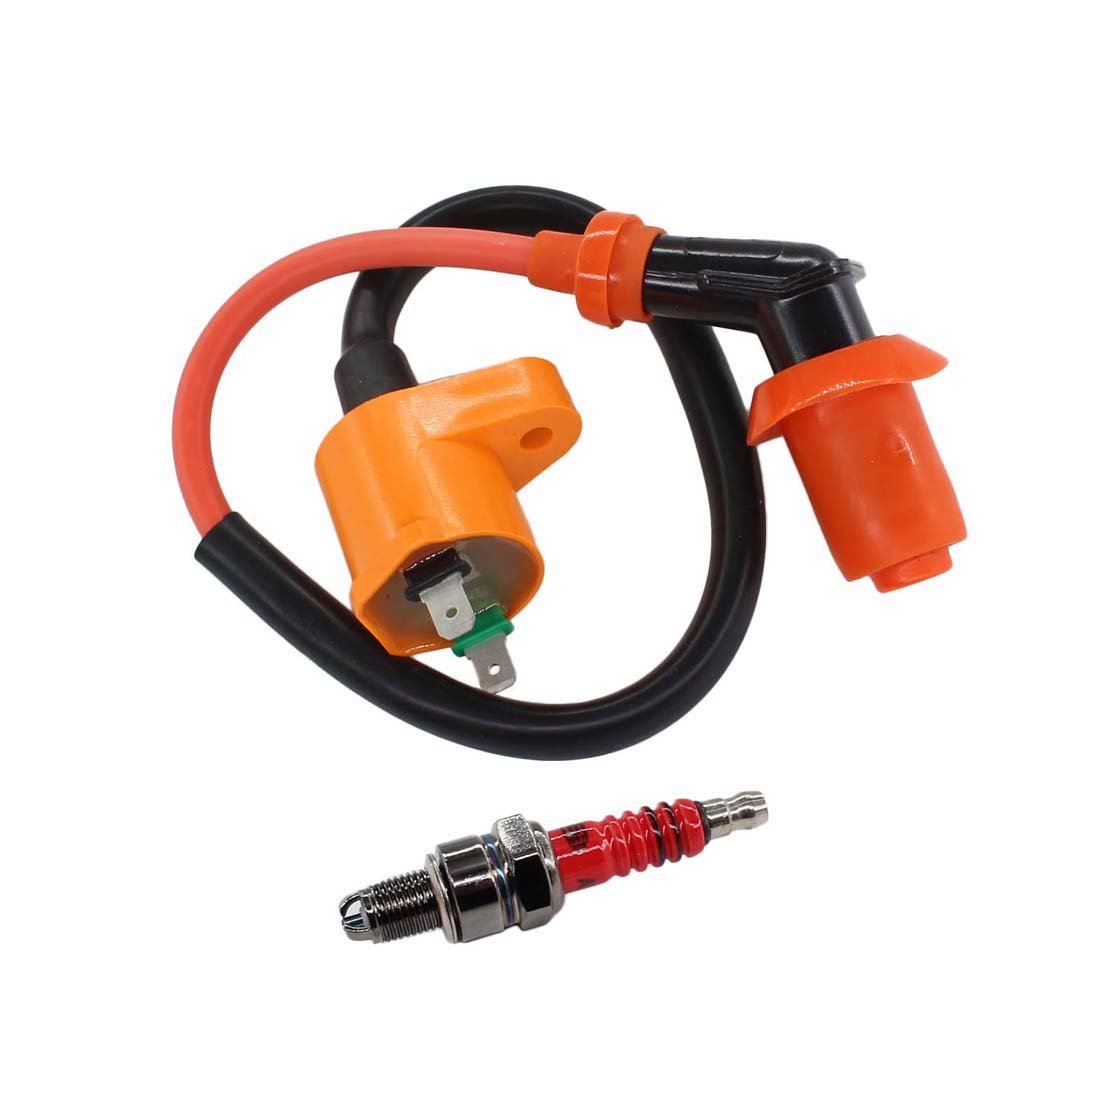 Cheap Honda Xr70 Parts Find Deals On Line At Xr80 Wiring Get Quotations Uspeeda Ignition Coil Spark Plug For Xr50 Xr100 Crf50 Crf70 Crf80 Crf100